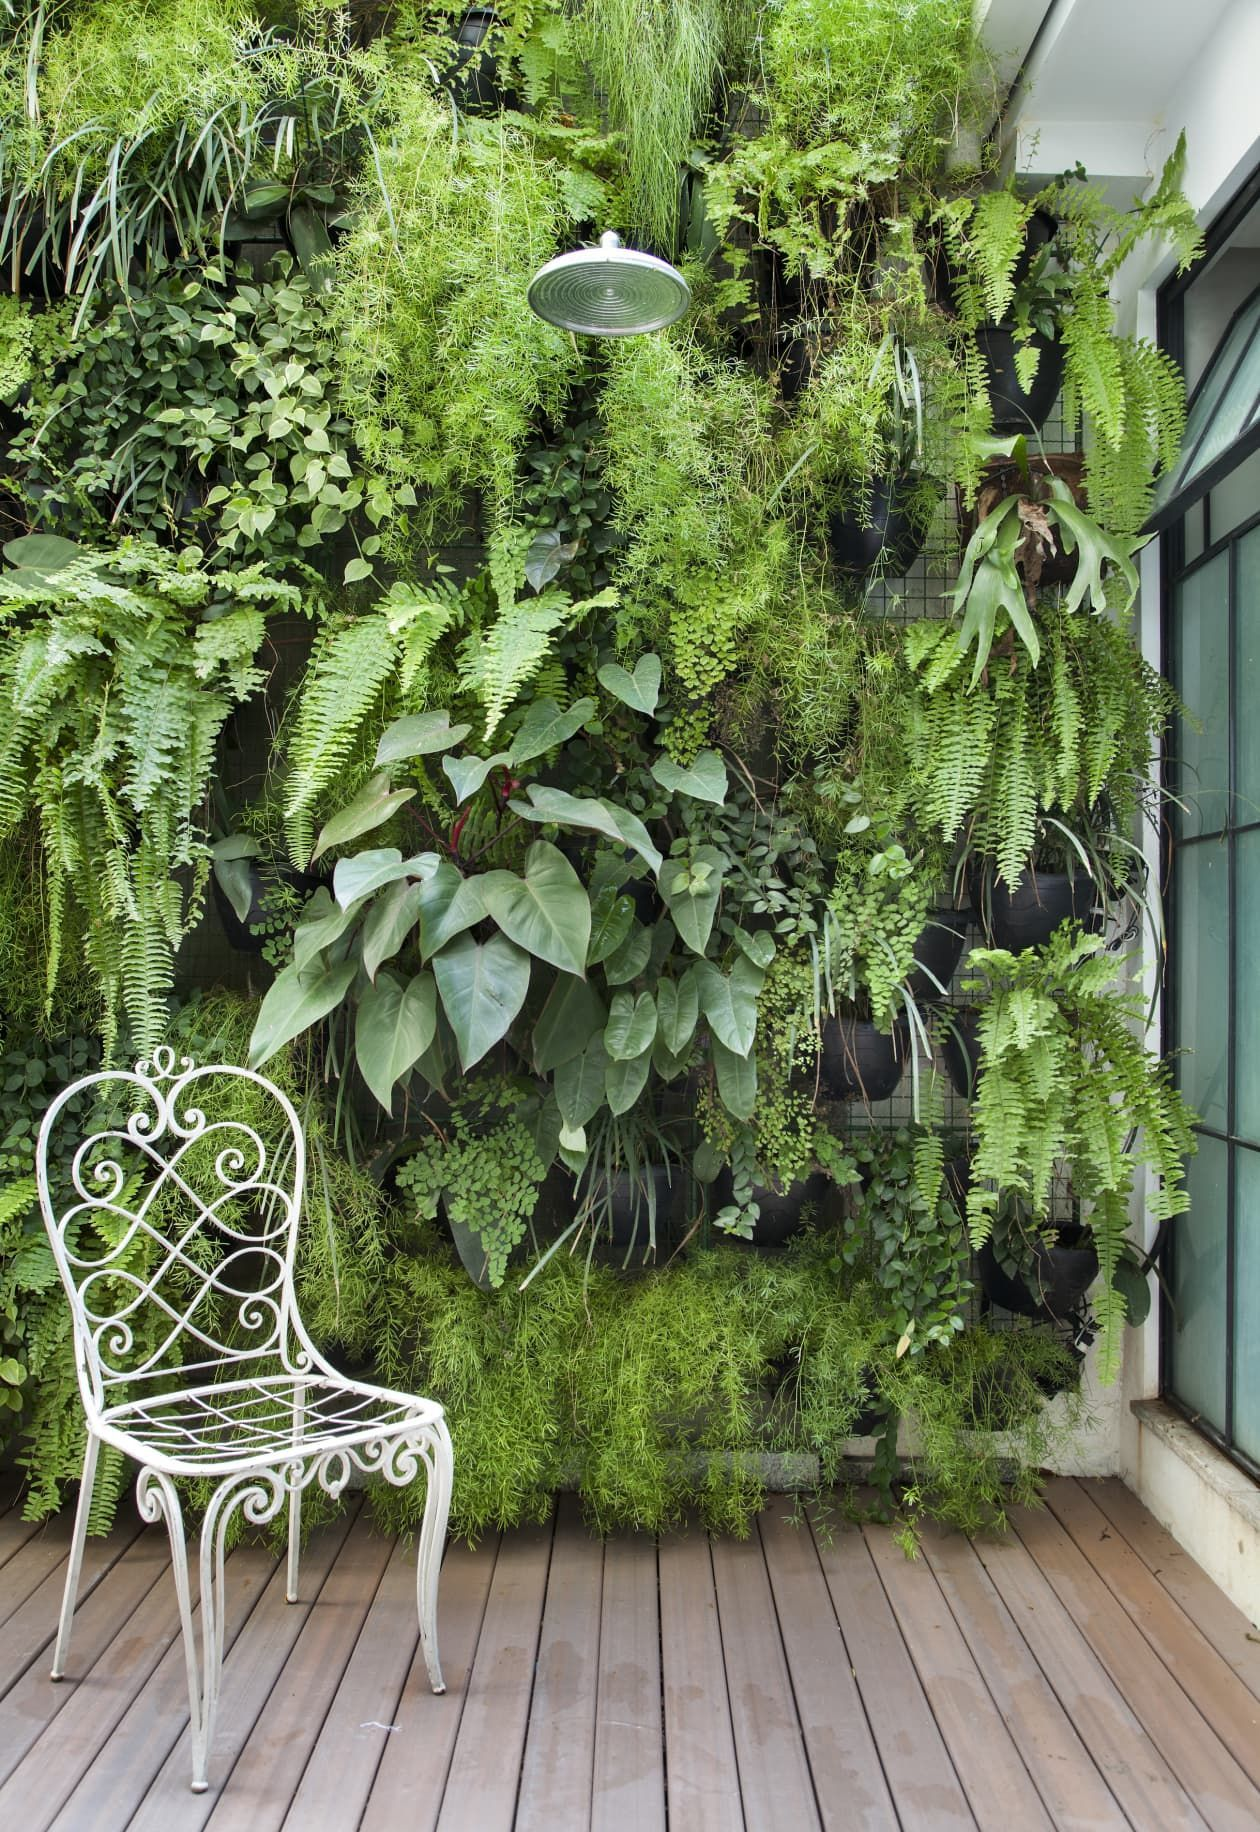 700+ 6 Big Garden Trends We're So Excited to See This Year